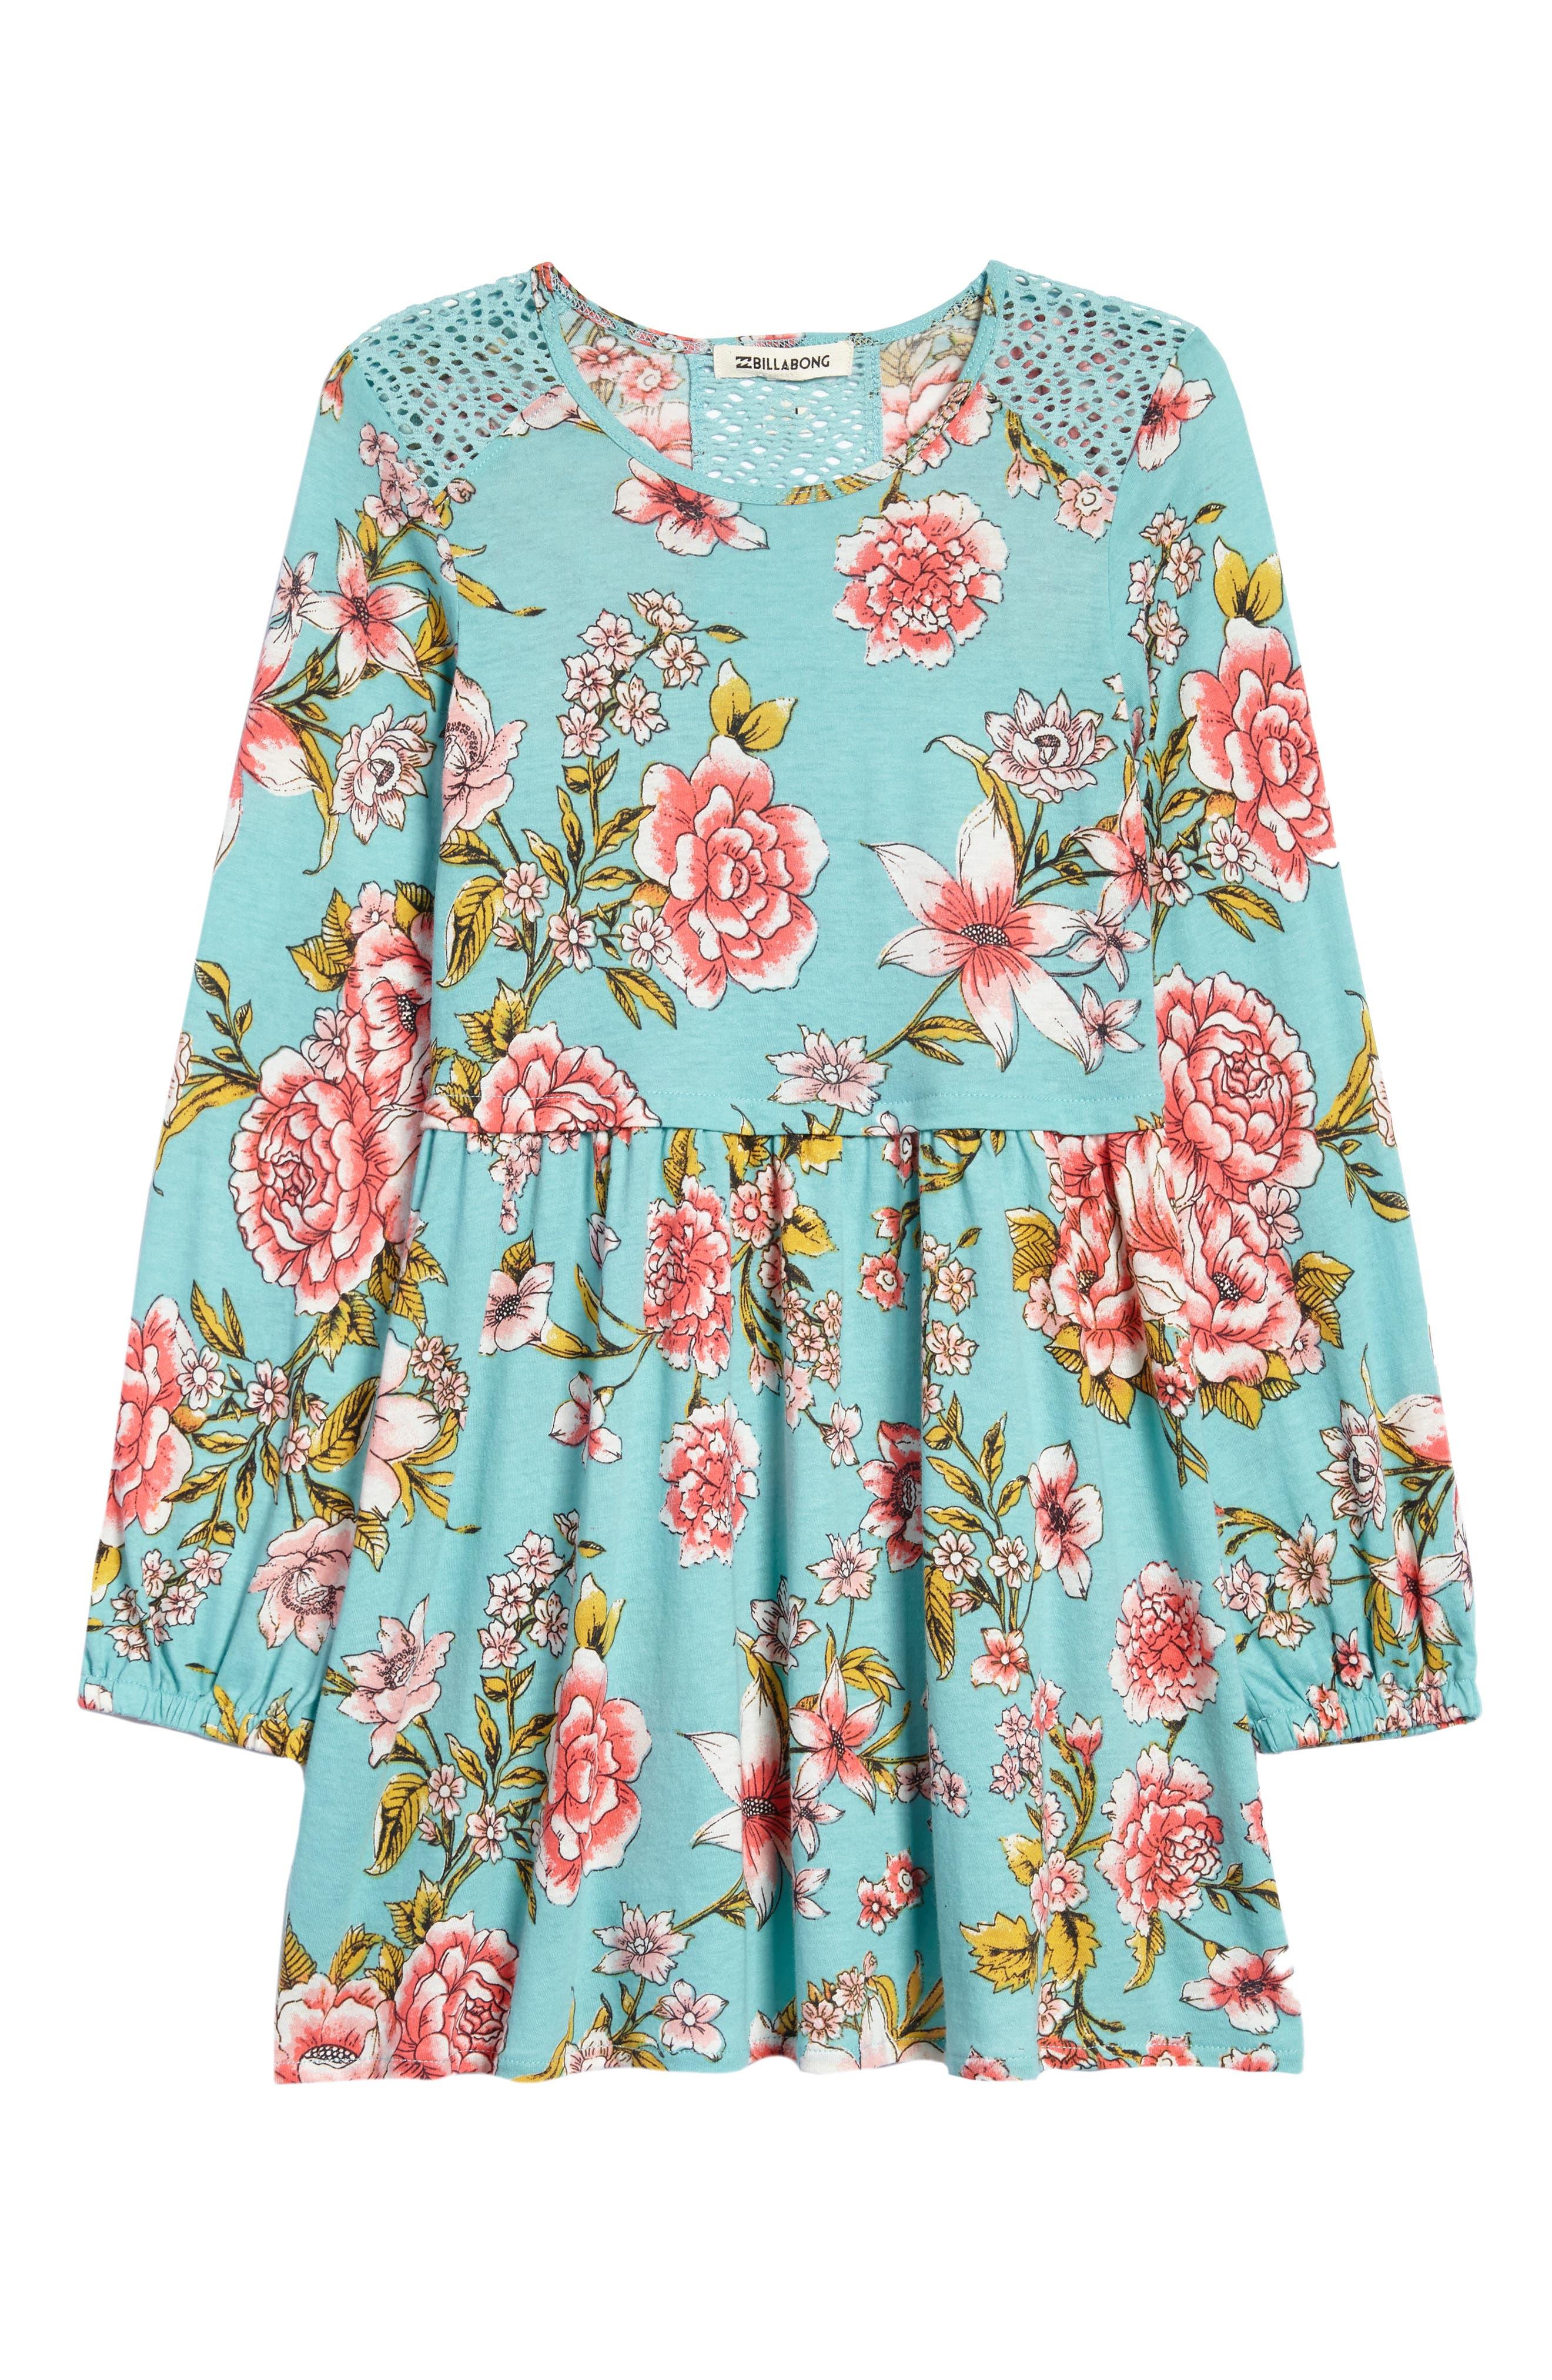 Me Oh My Dress,                         Main,                         color, 446